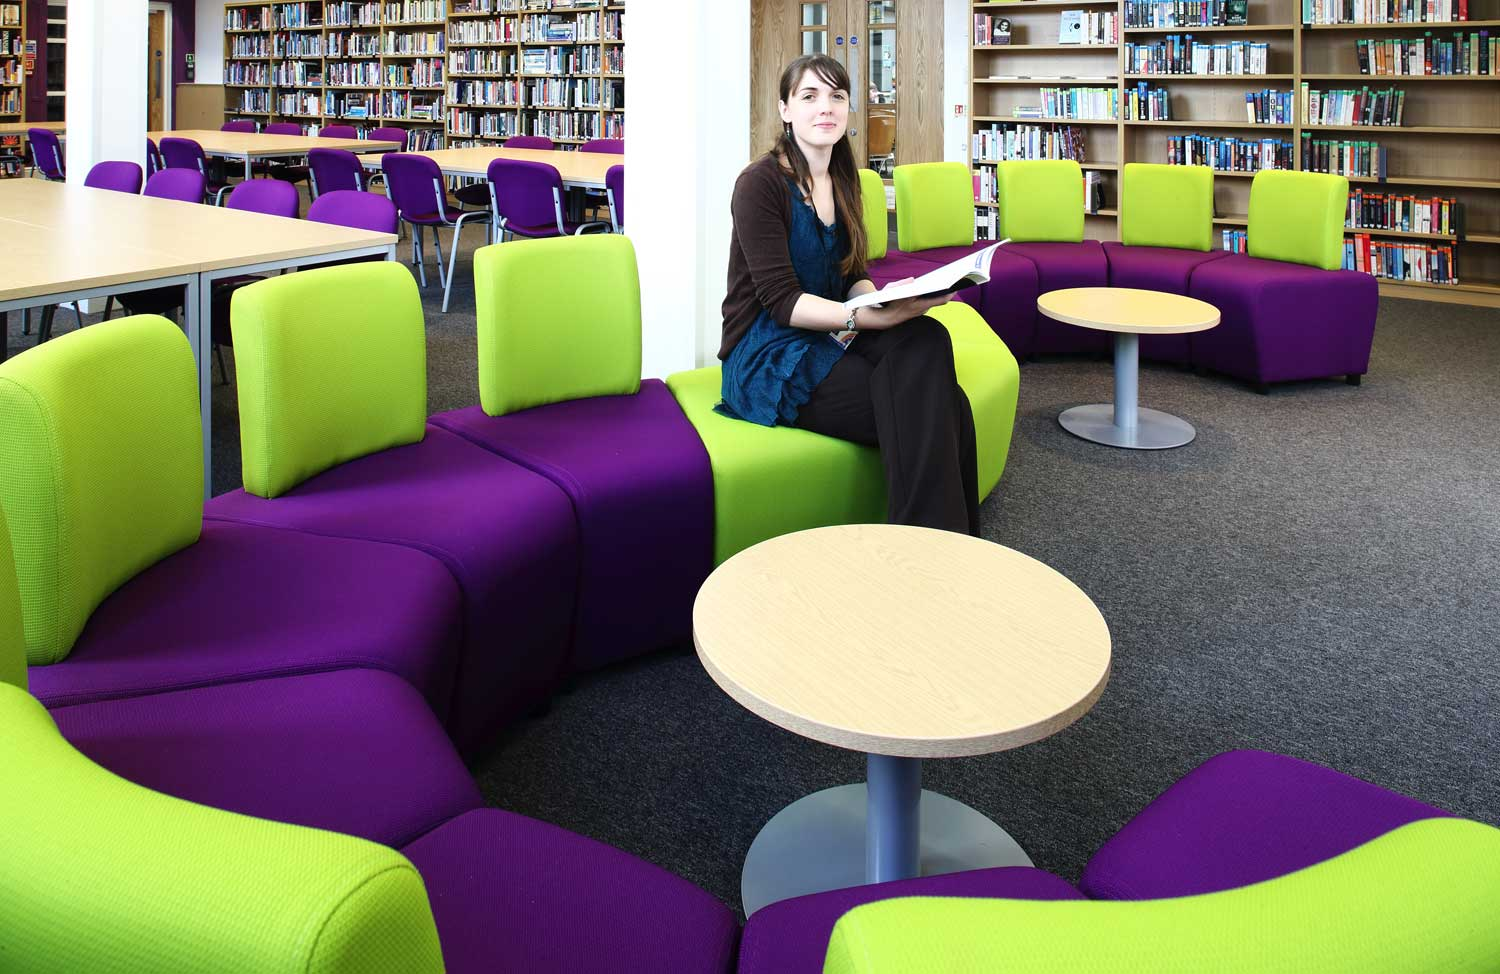 Download Top 10 Interior Design Tips For Your School Bolton Manchester Cheshire Lancashire